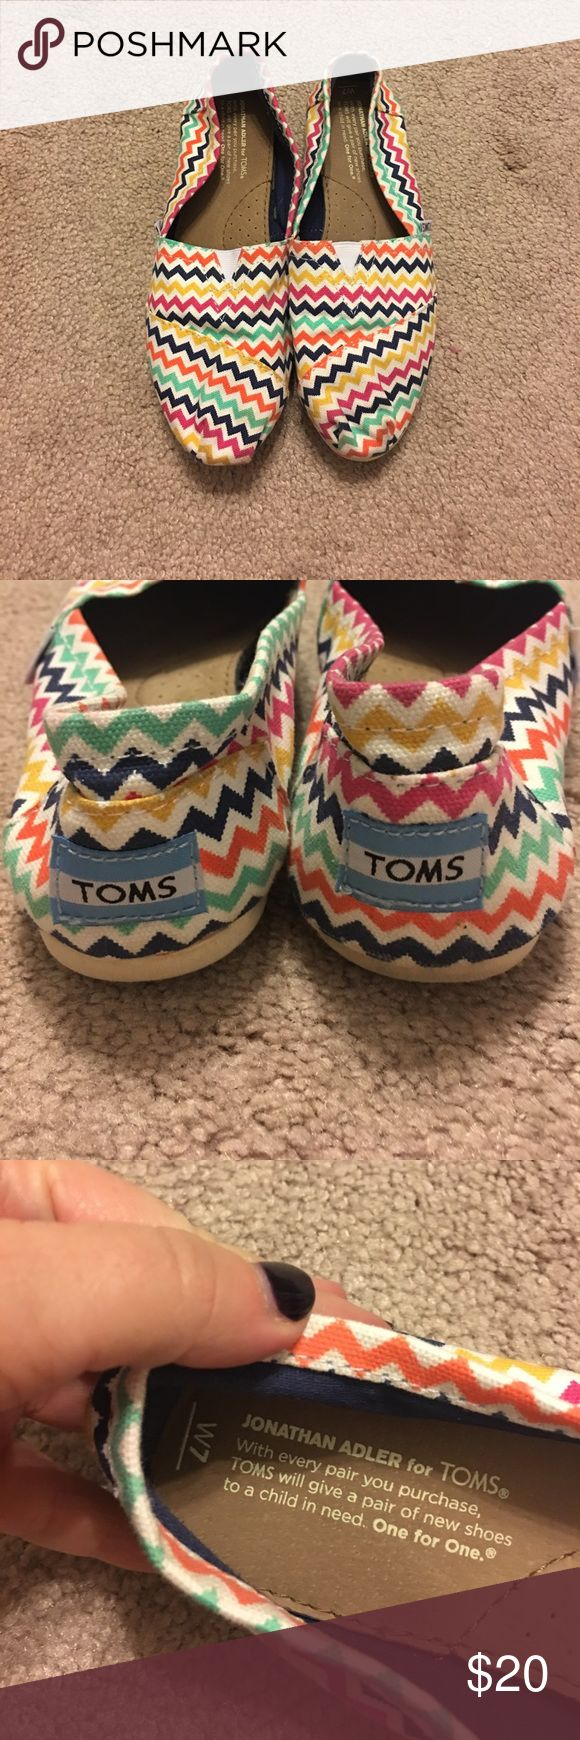 Chevron TOMS Like new TOMS. Only worn a few times. No holes in the fabric. Soles in good condition. Toms Shoes